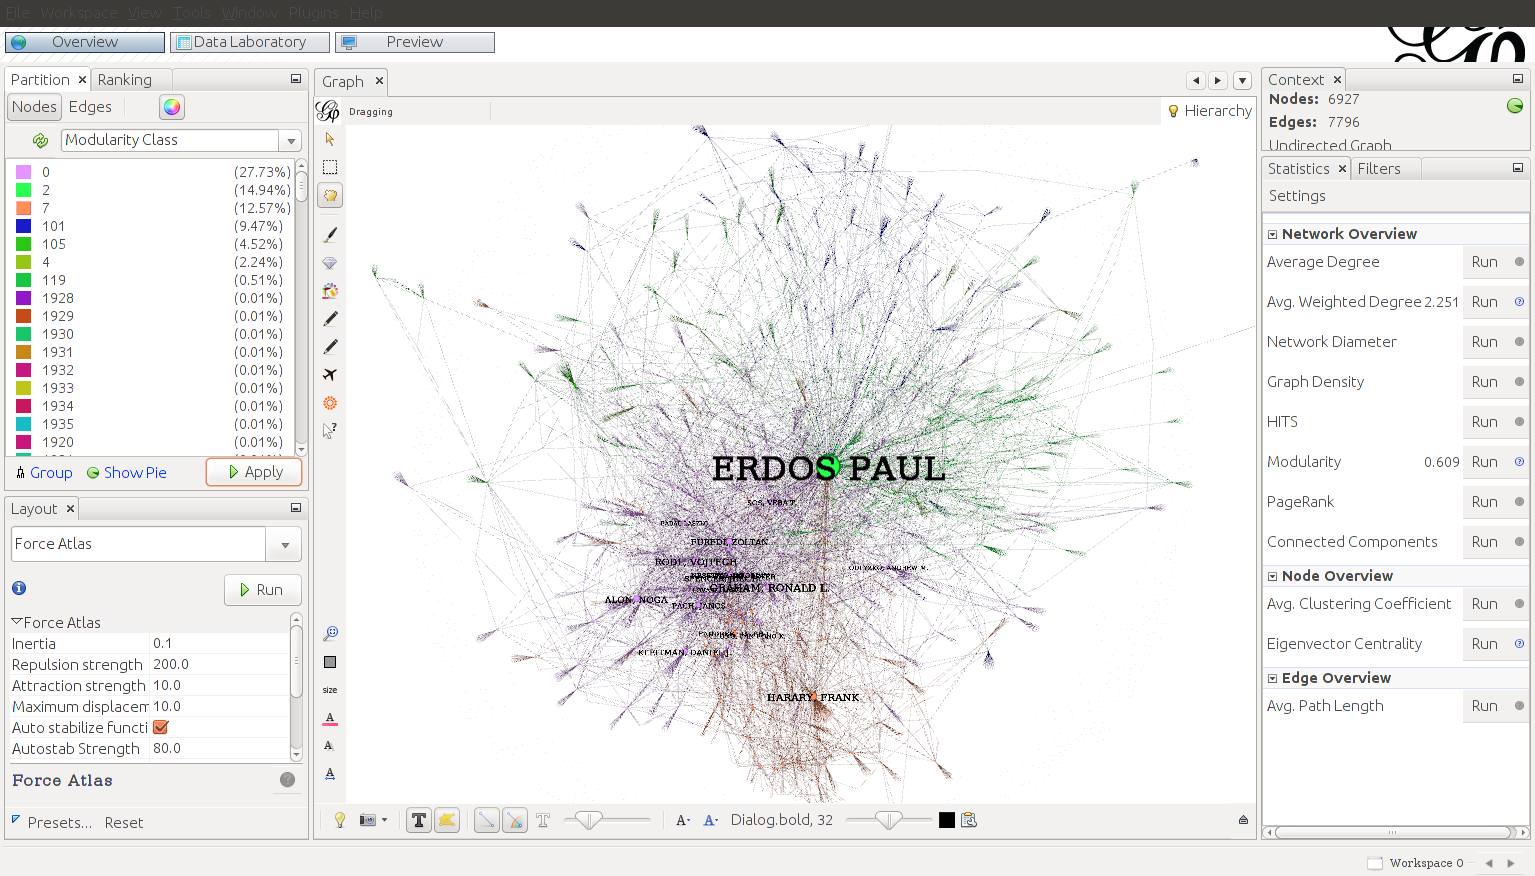 Gephi 0.8.2 - Project 0_011